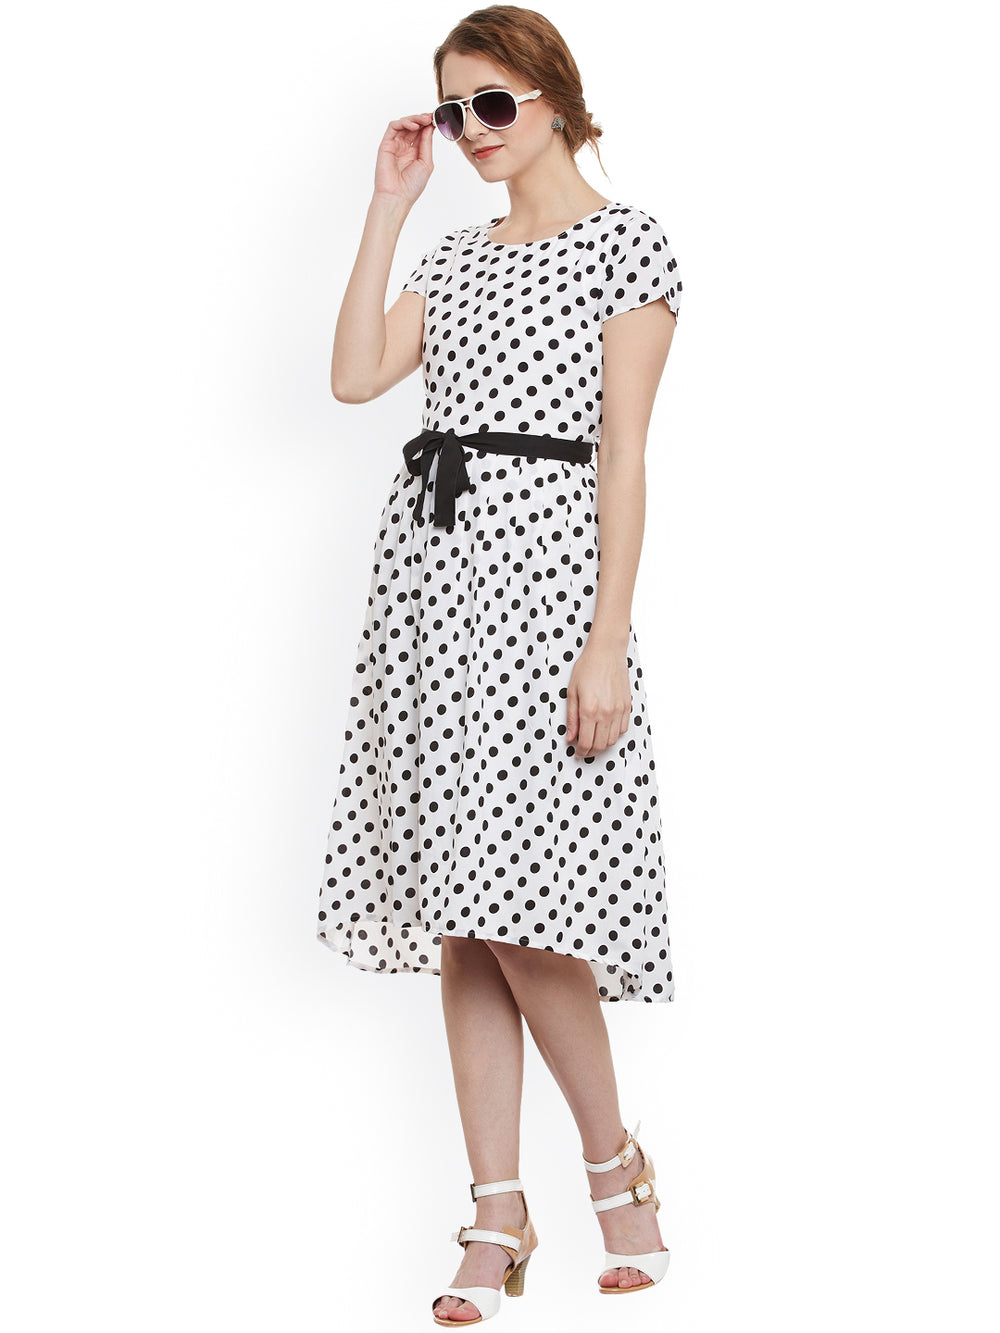 eyelet Women White & Black Polka Dot Print Fit & Flare Dress